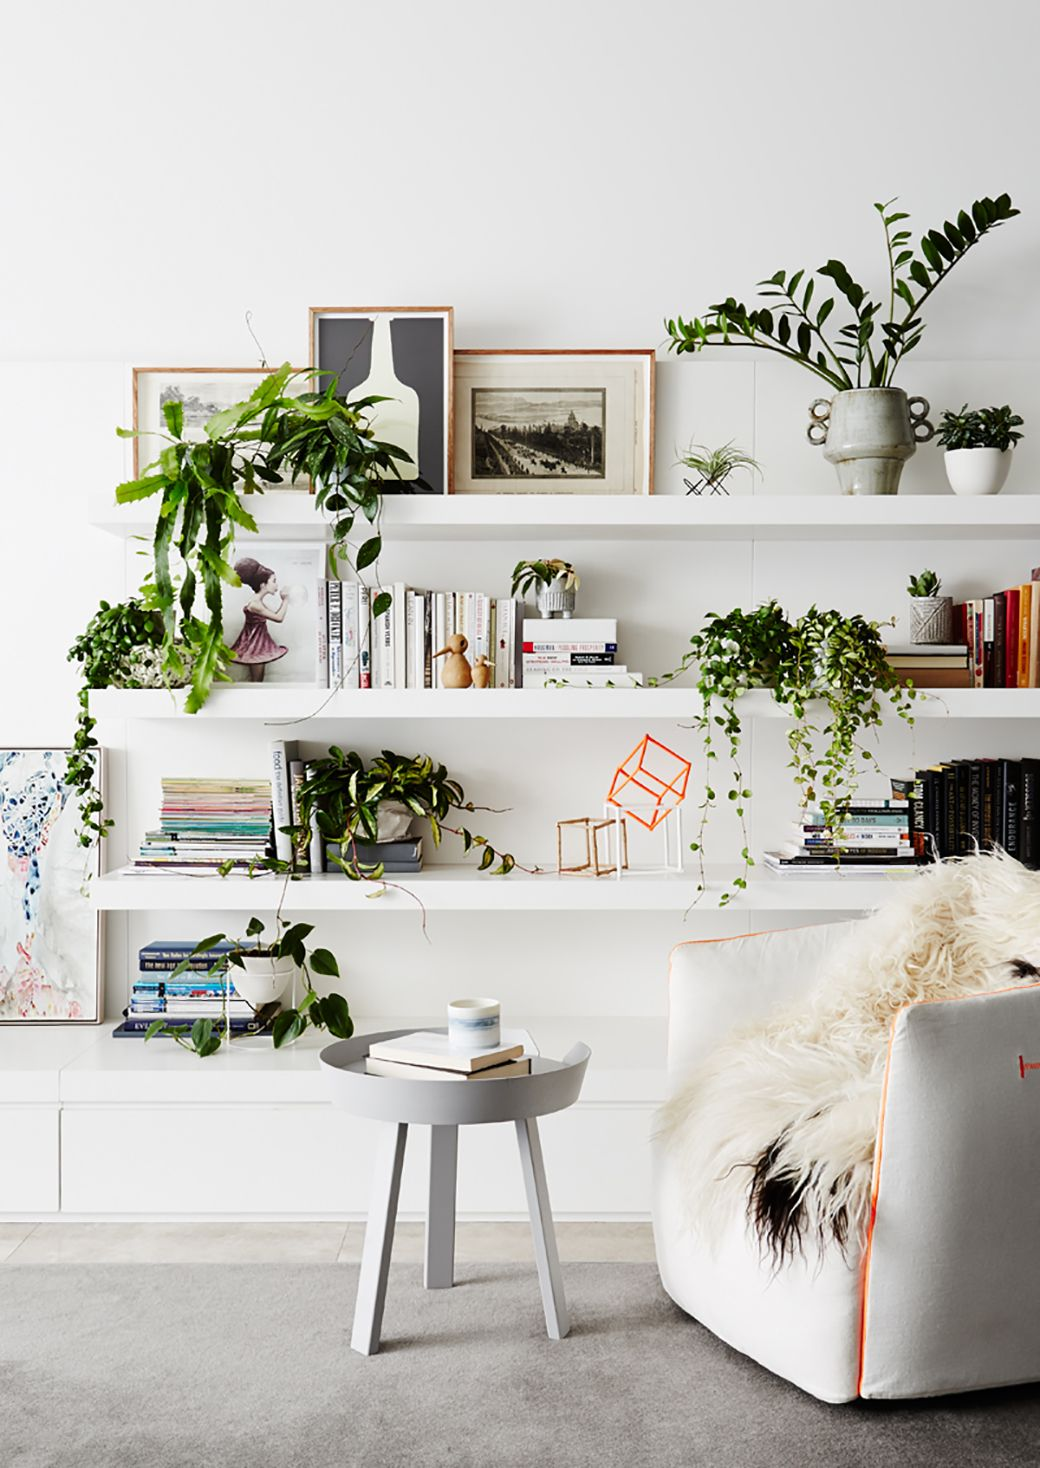 8 Stylish Ways To Decorate Live With Plants Decor8 S